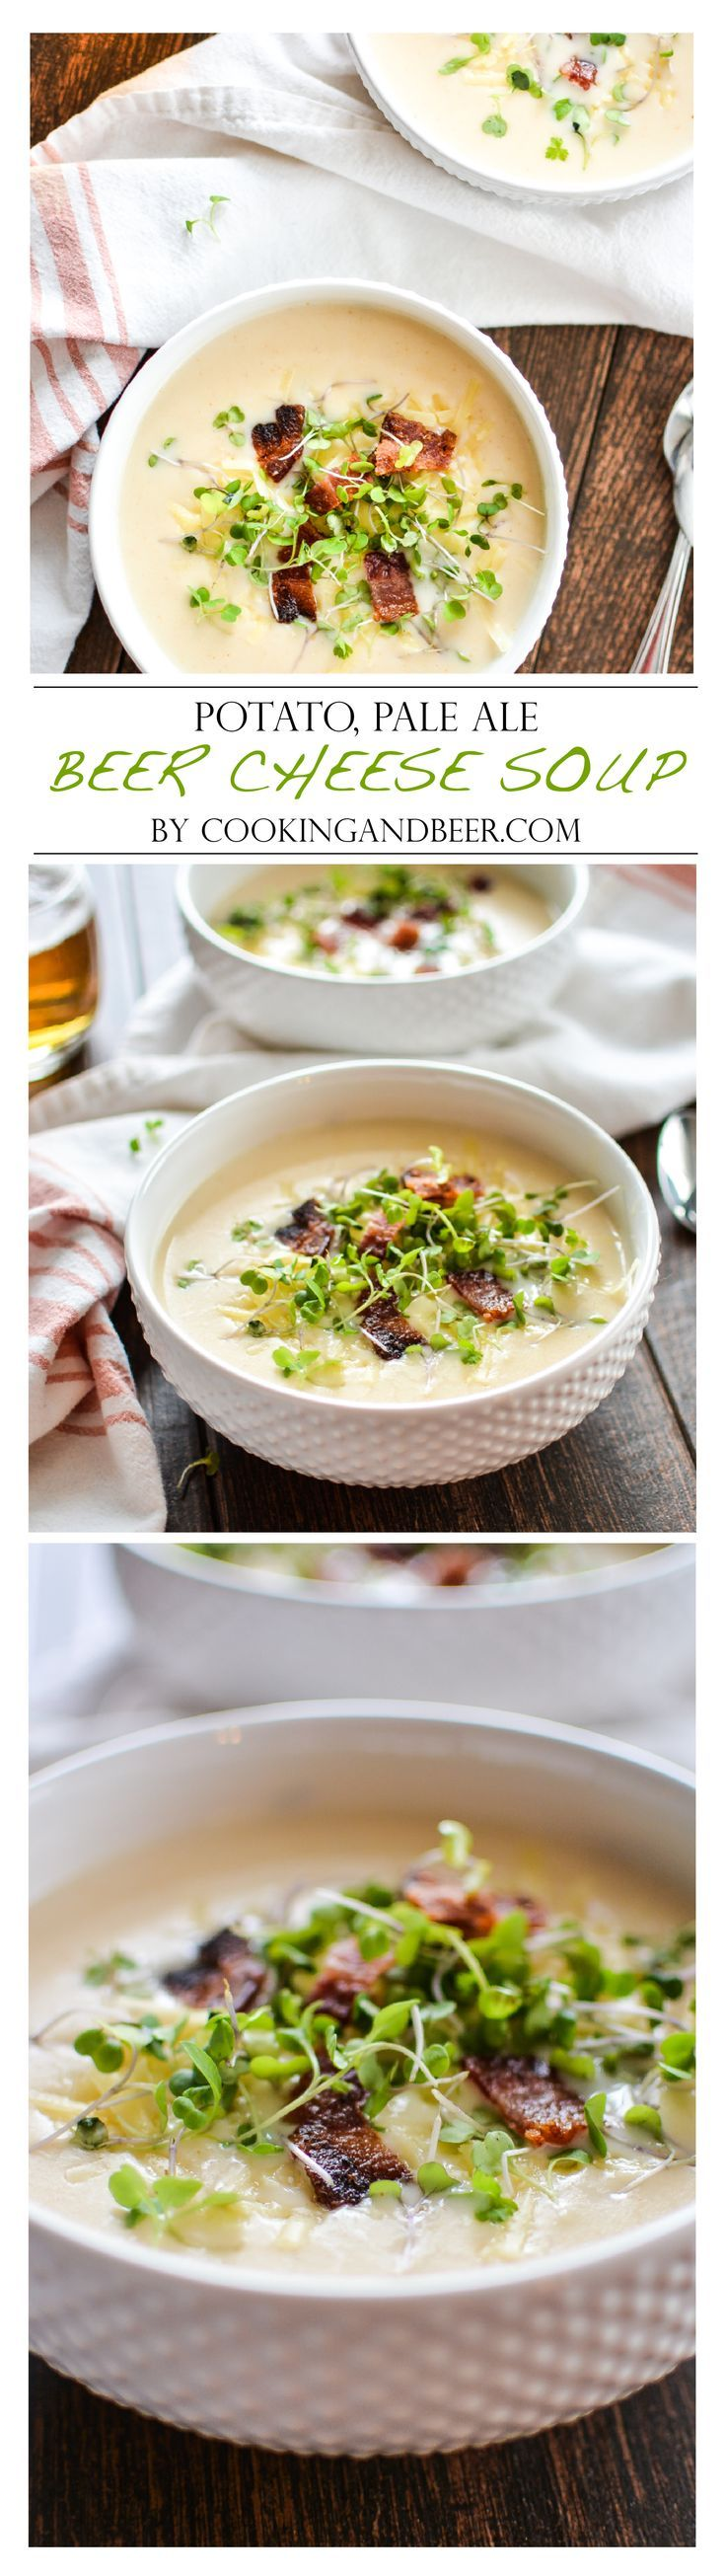 Potato, Pale Ale Beer Cheese Soup with Bacon | www.cookingandbeer.com | @jalanesulia